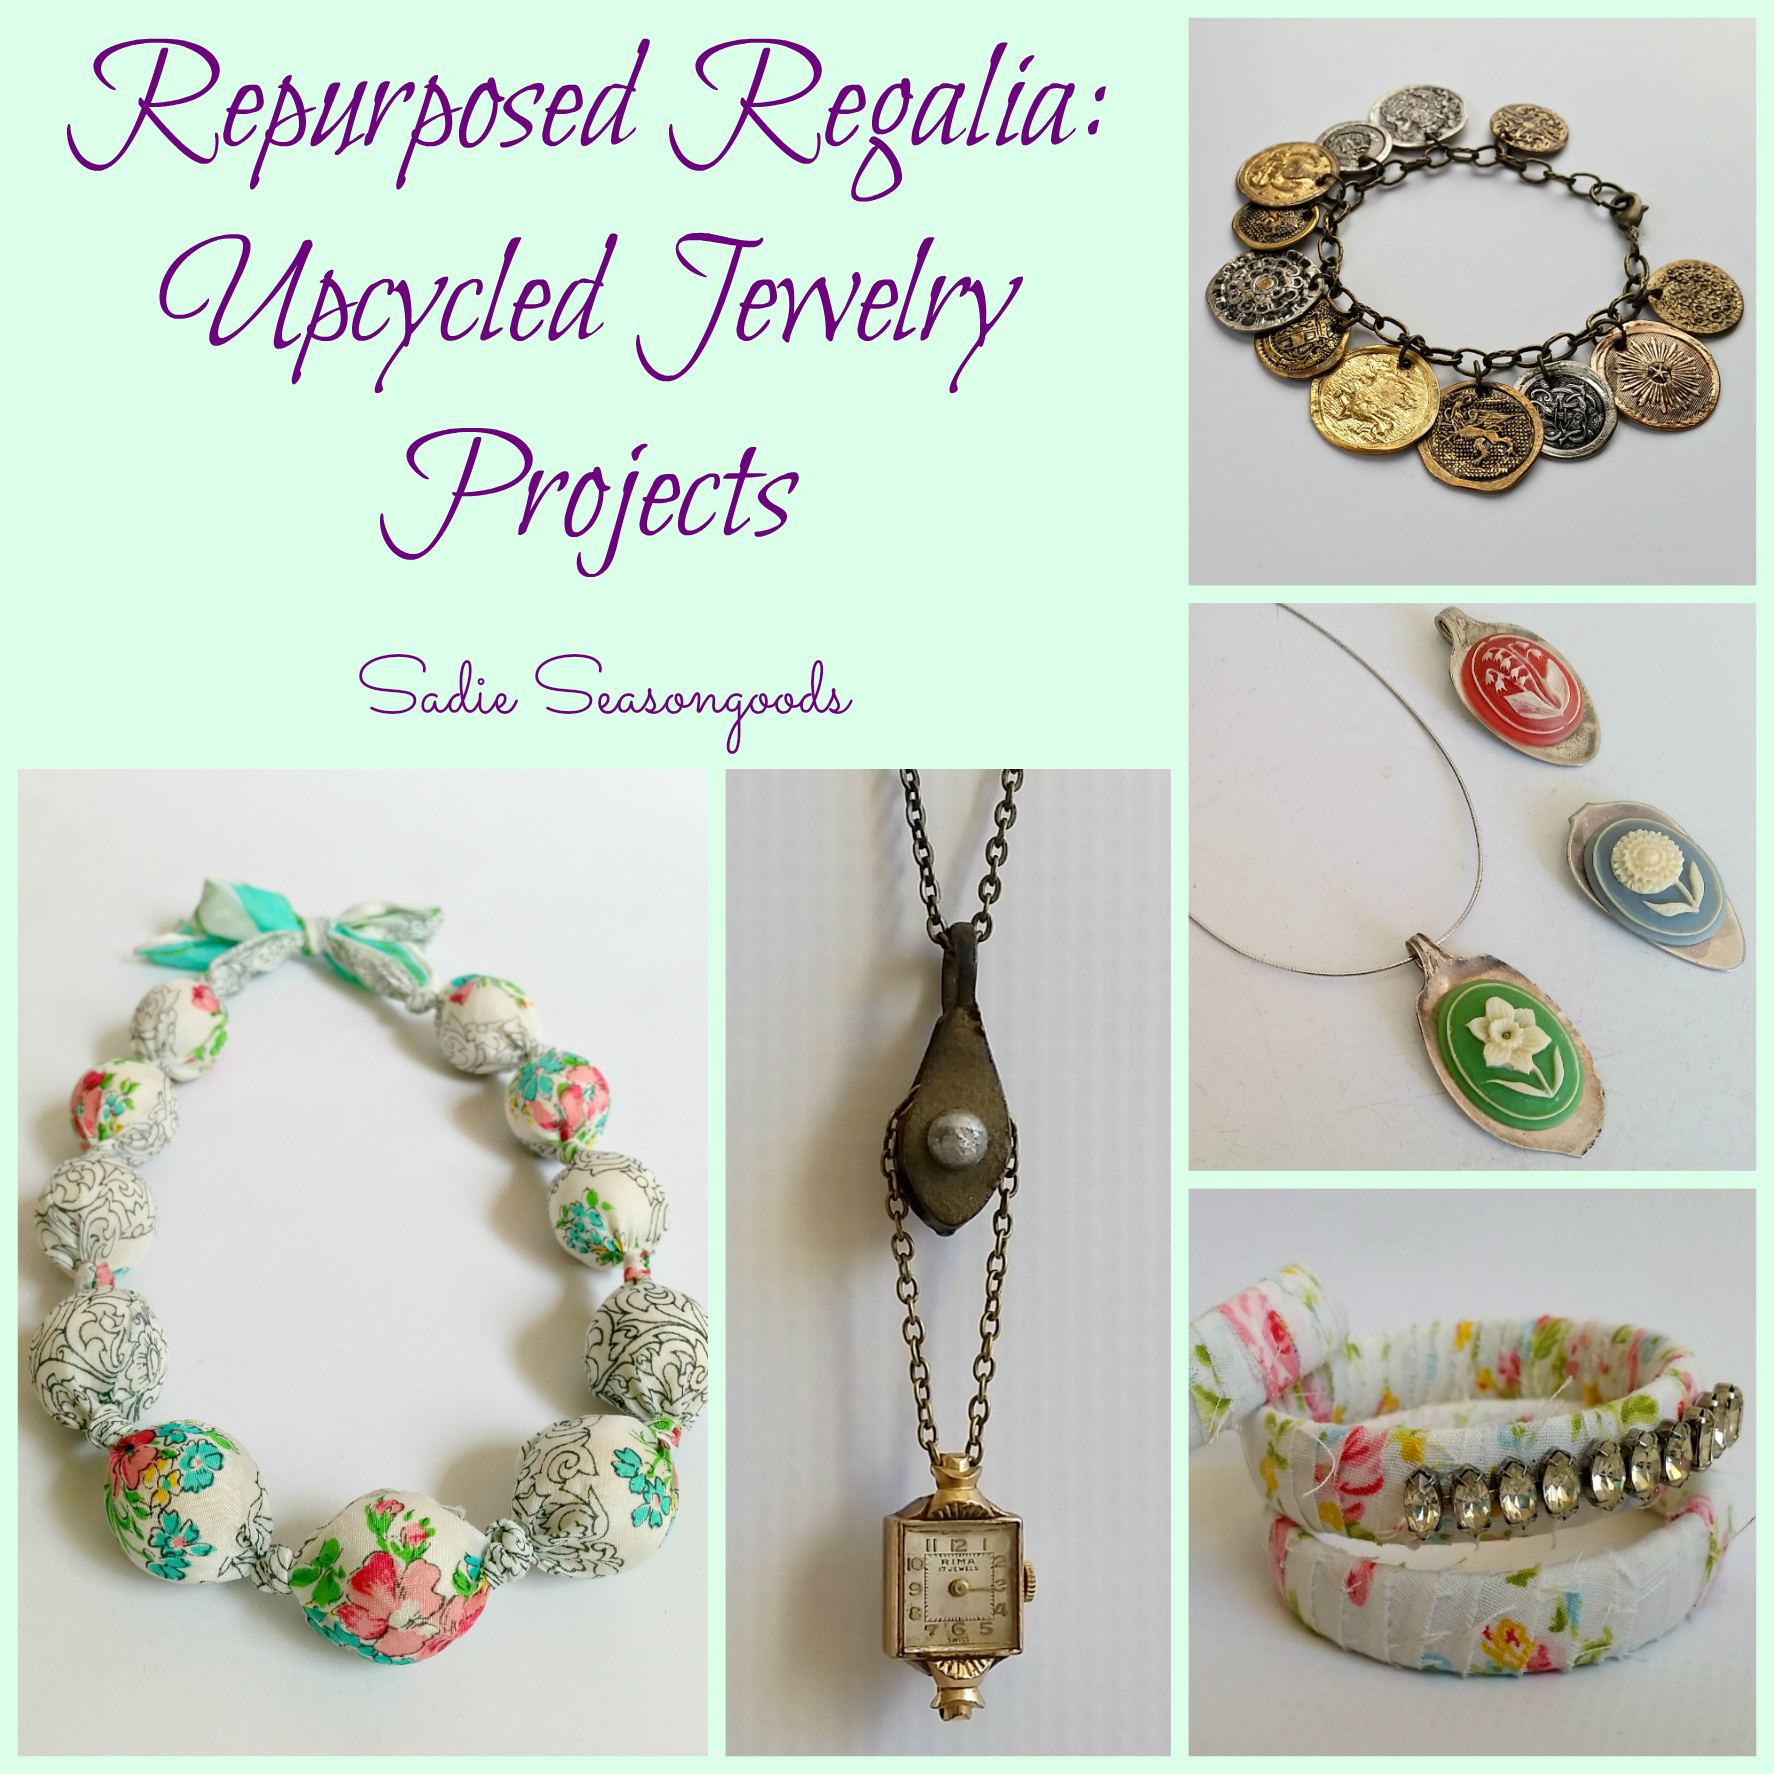 DIY Tutorials Repurposed Regalia: Upcycled Jewelry Projects. Just lovely!